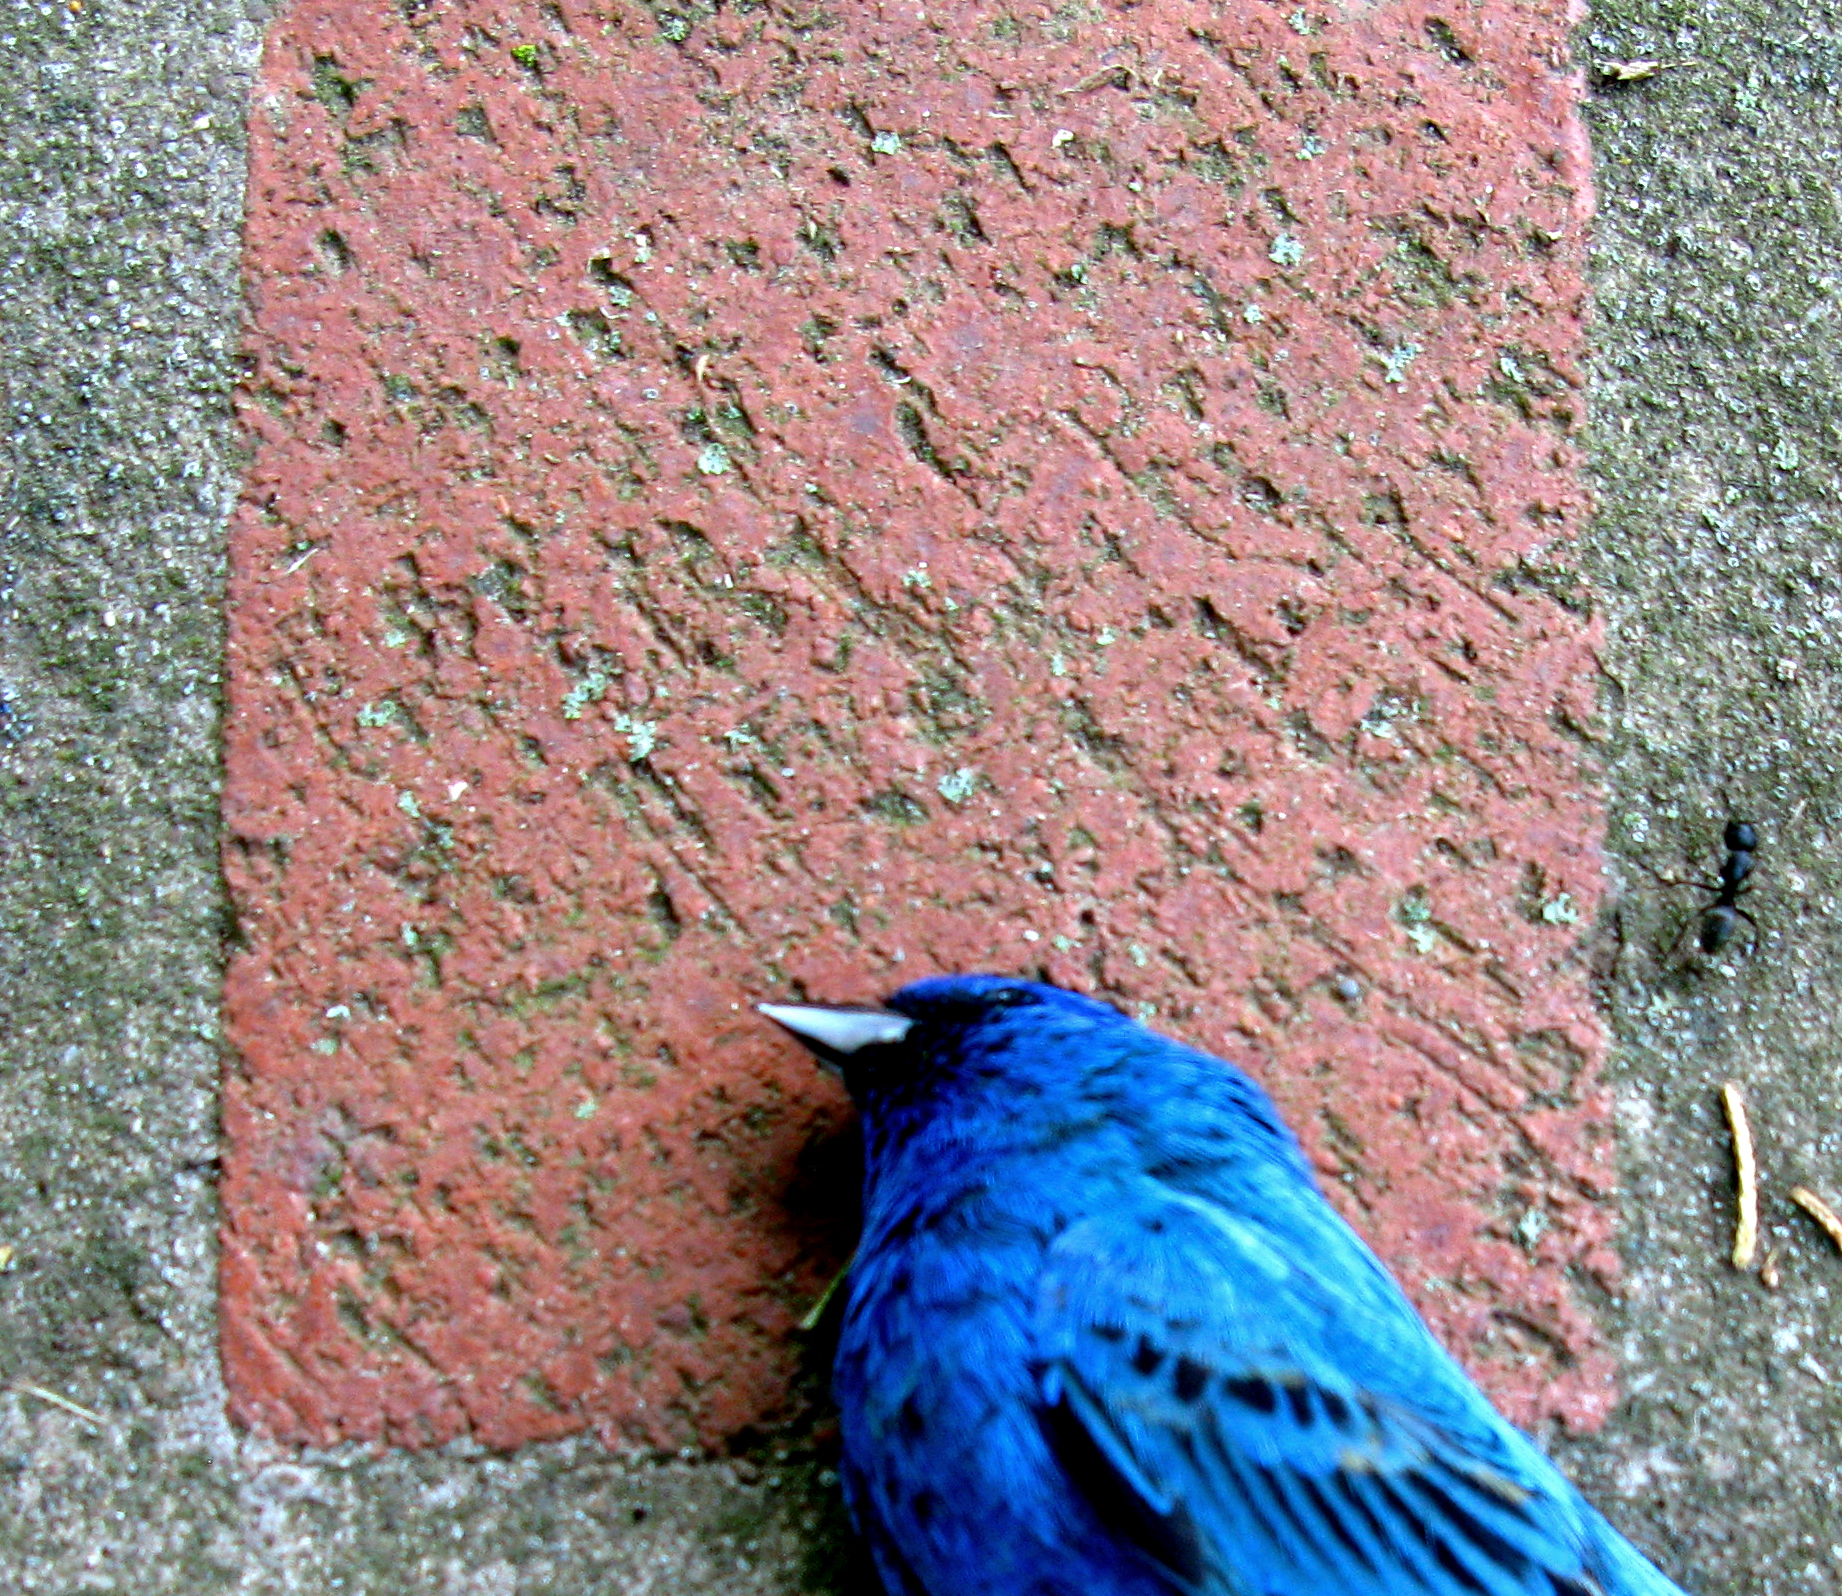 brick with dead indigo bunting approached by an ant